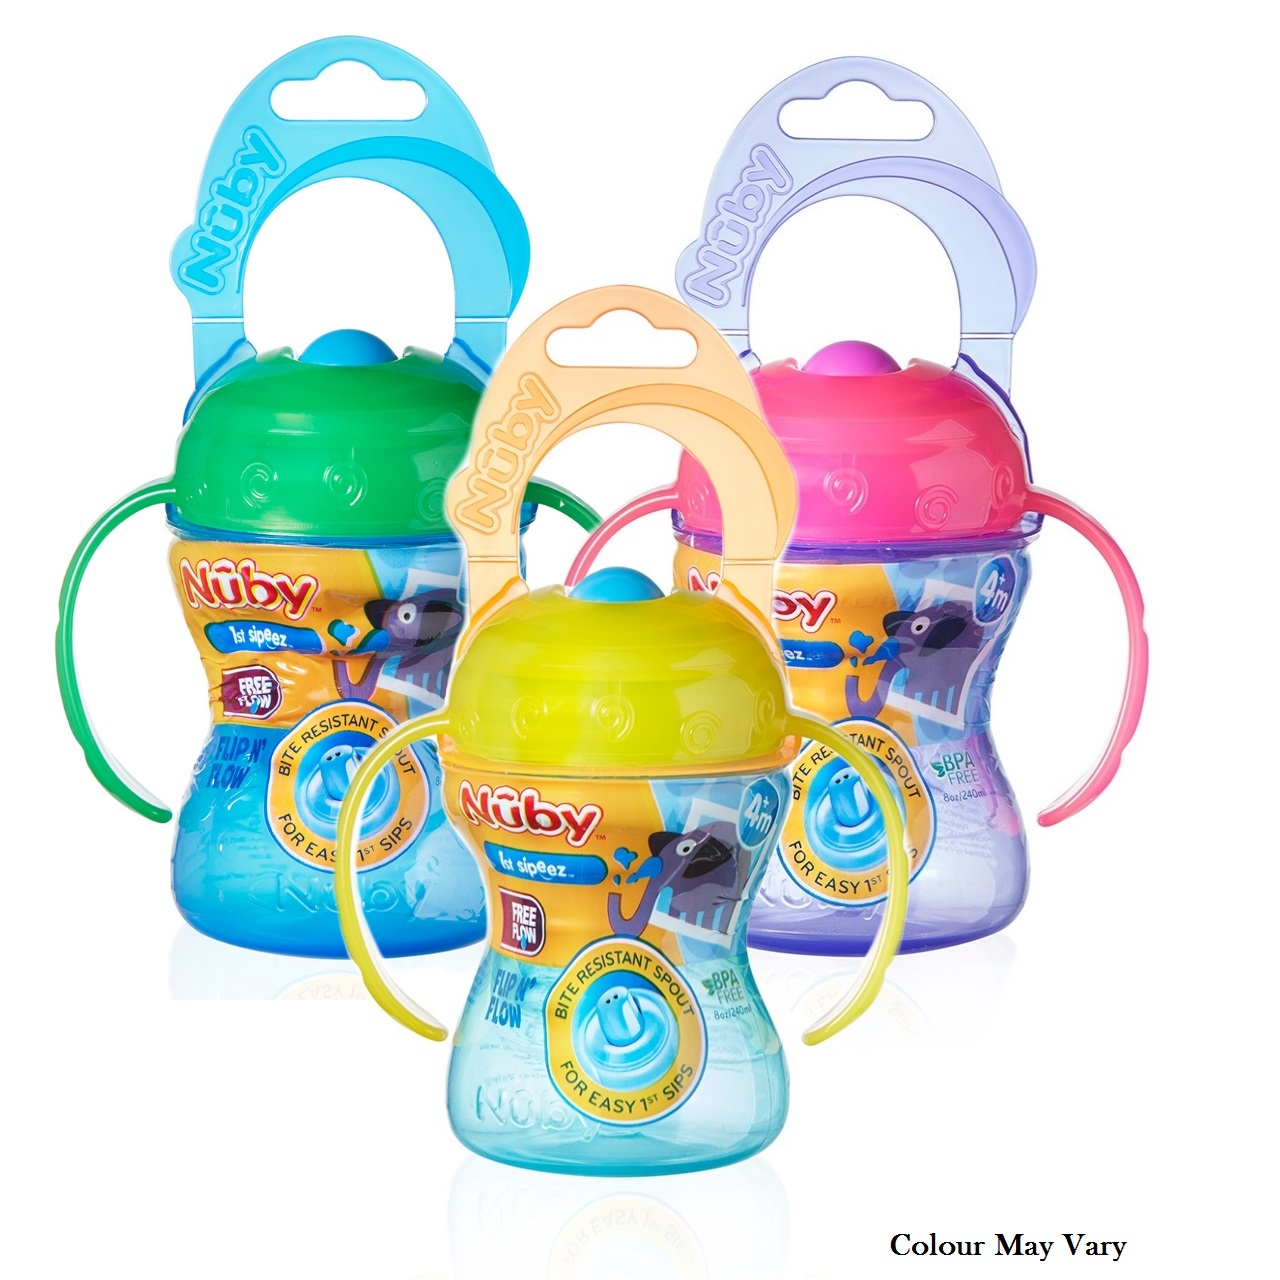 Nuby Baby Easy-Grip Handle Non-Spill Flip N Flow Infant Training Cup +4 Months